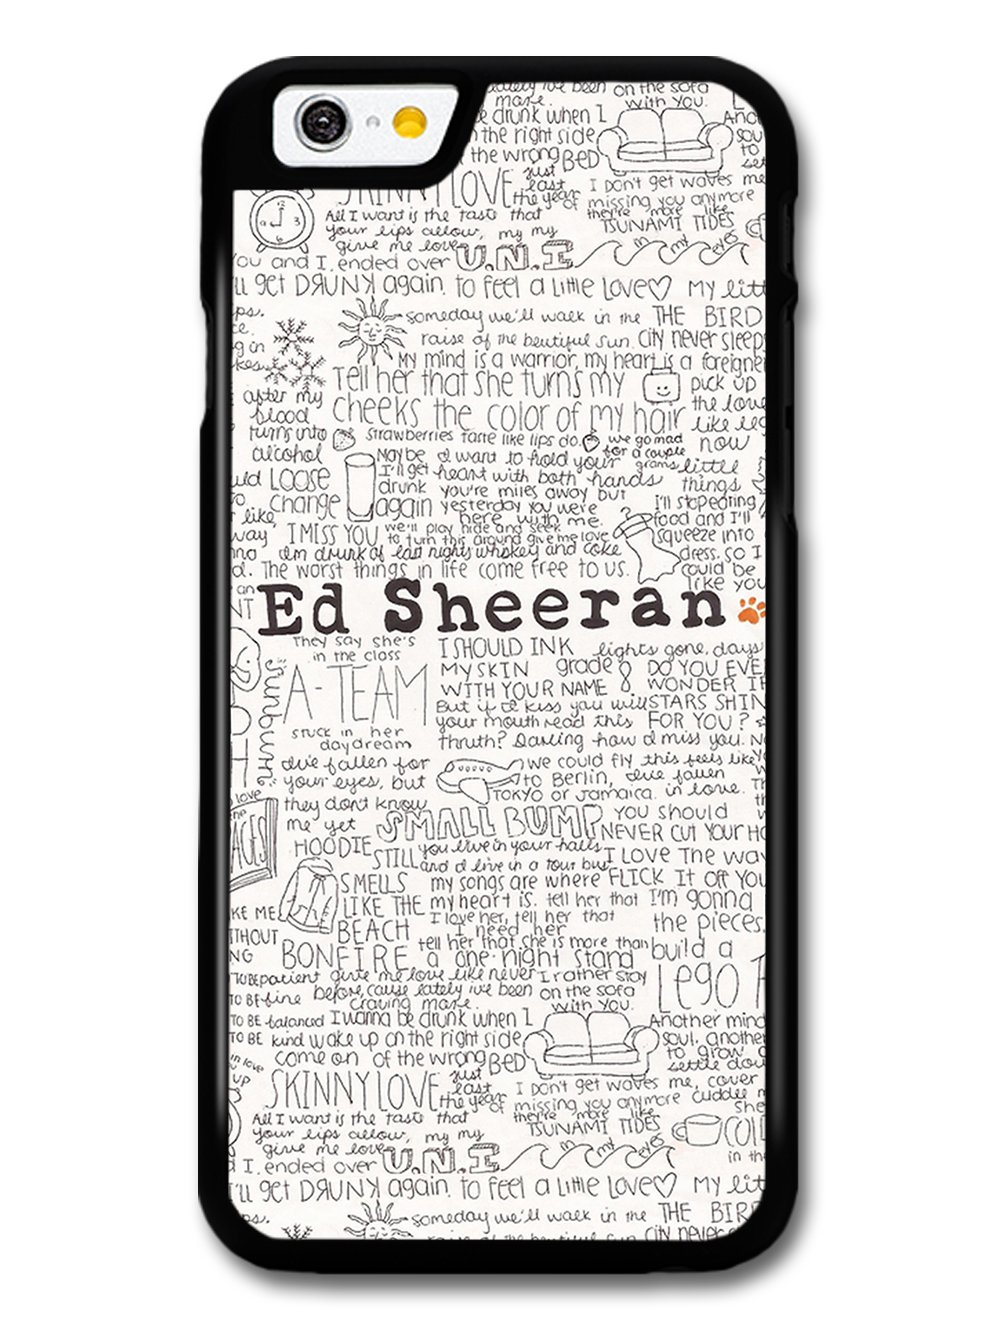 Ed Sheeran Song Lyrics Case For Iphone 6 6S: Amazon.co.uk: Electronics